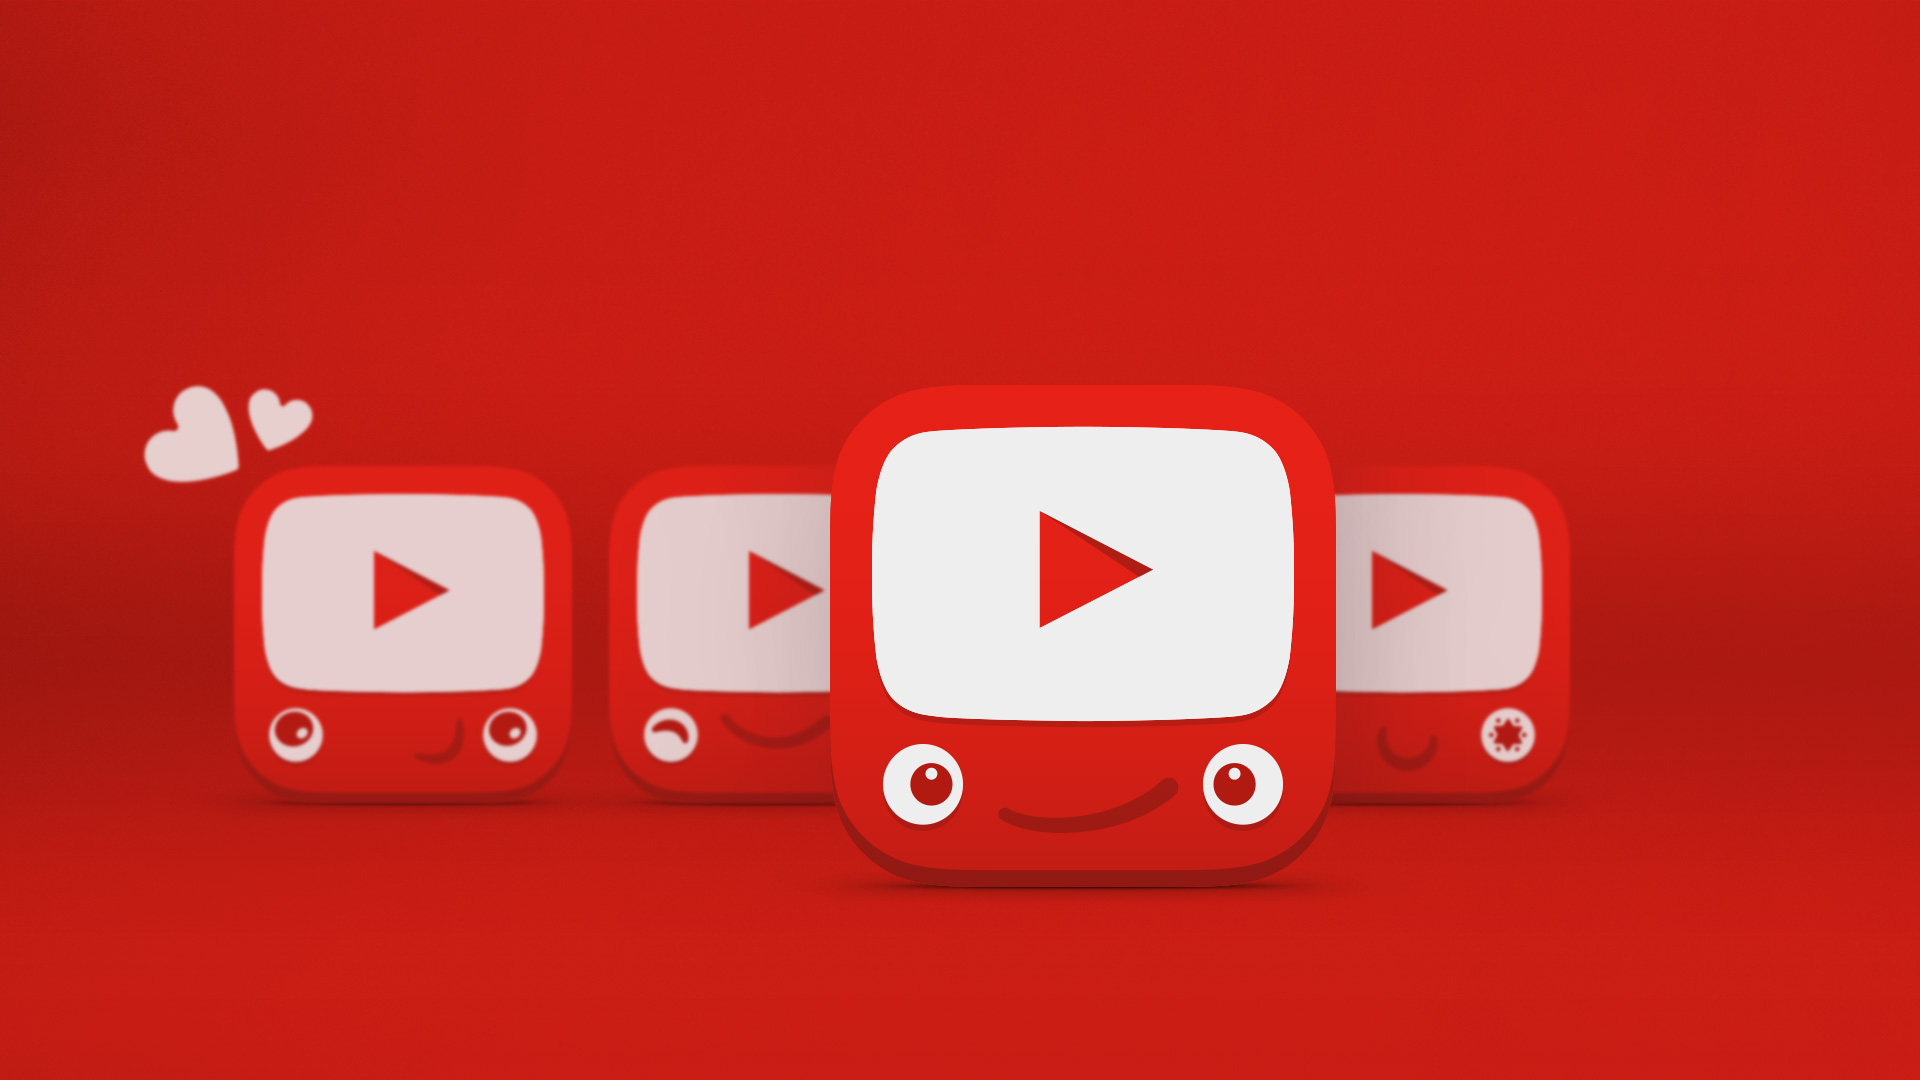 youtube play icon wallpaper 66873